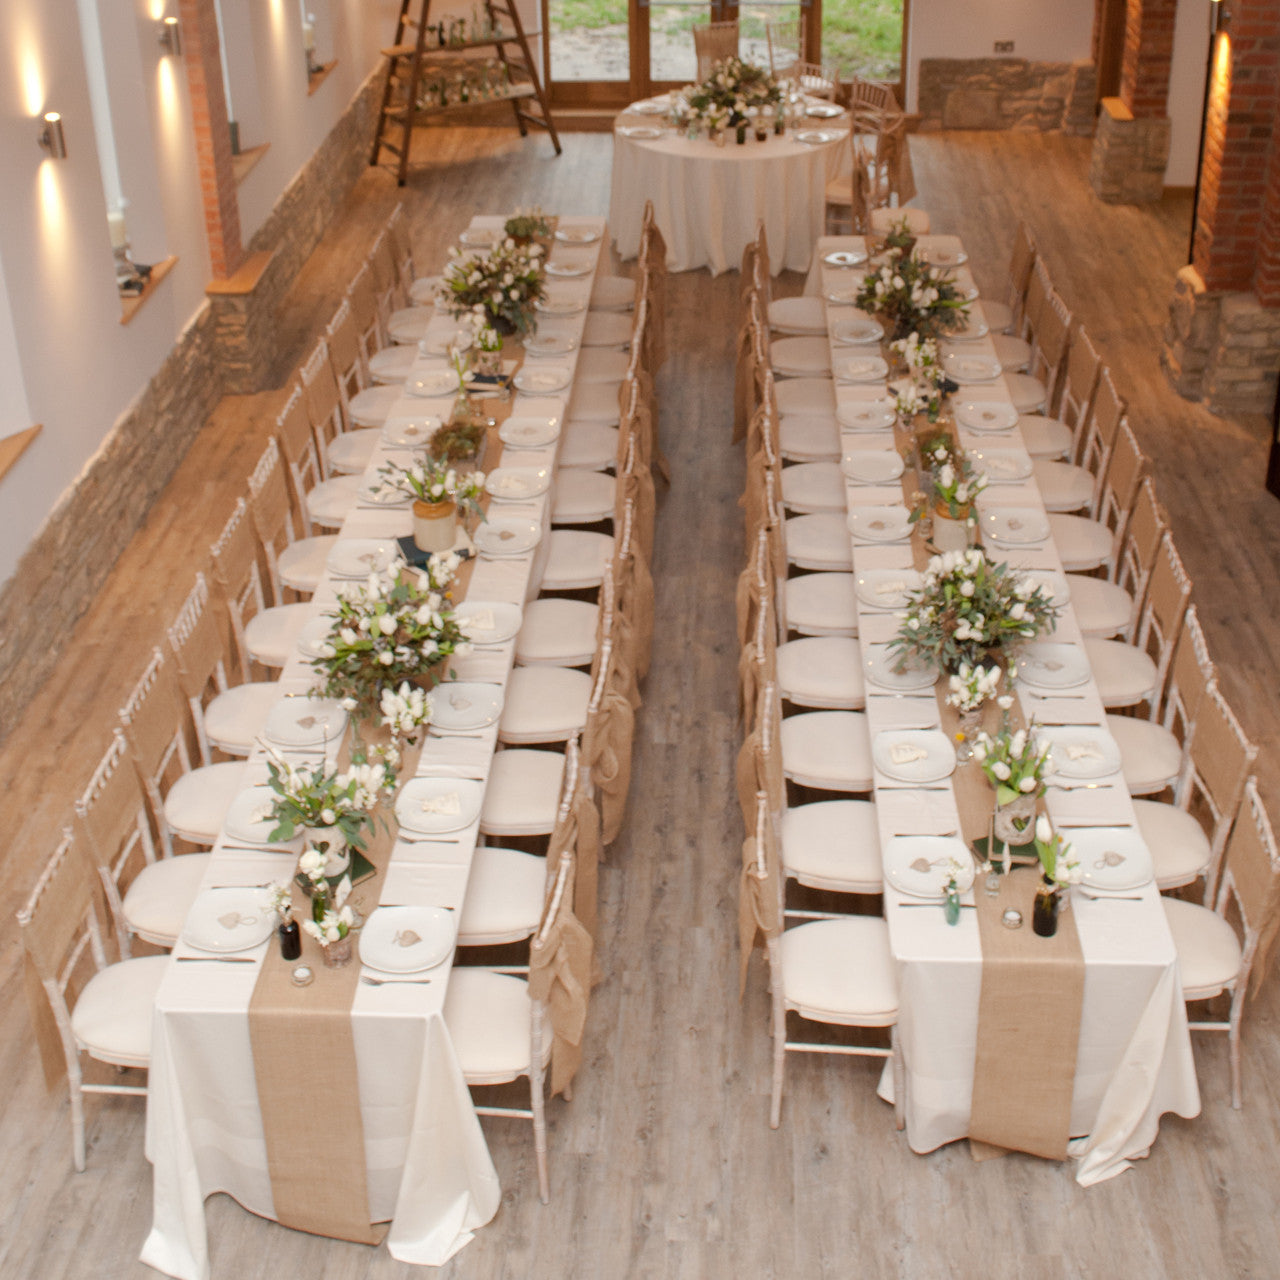 Hessian burlap table runner 5m length the wedding of my dreams solutioingenieria Gallery